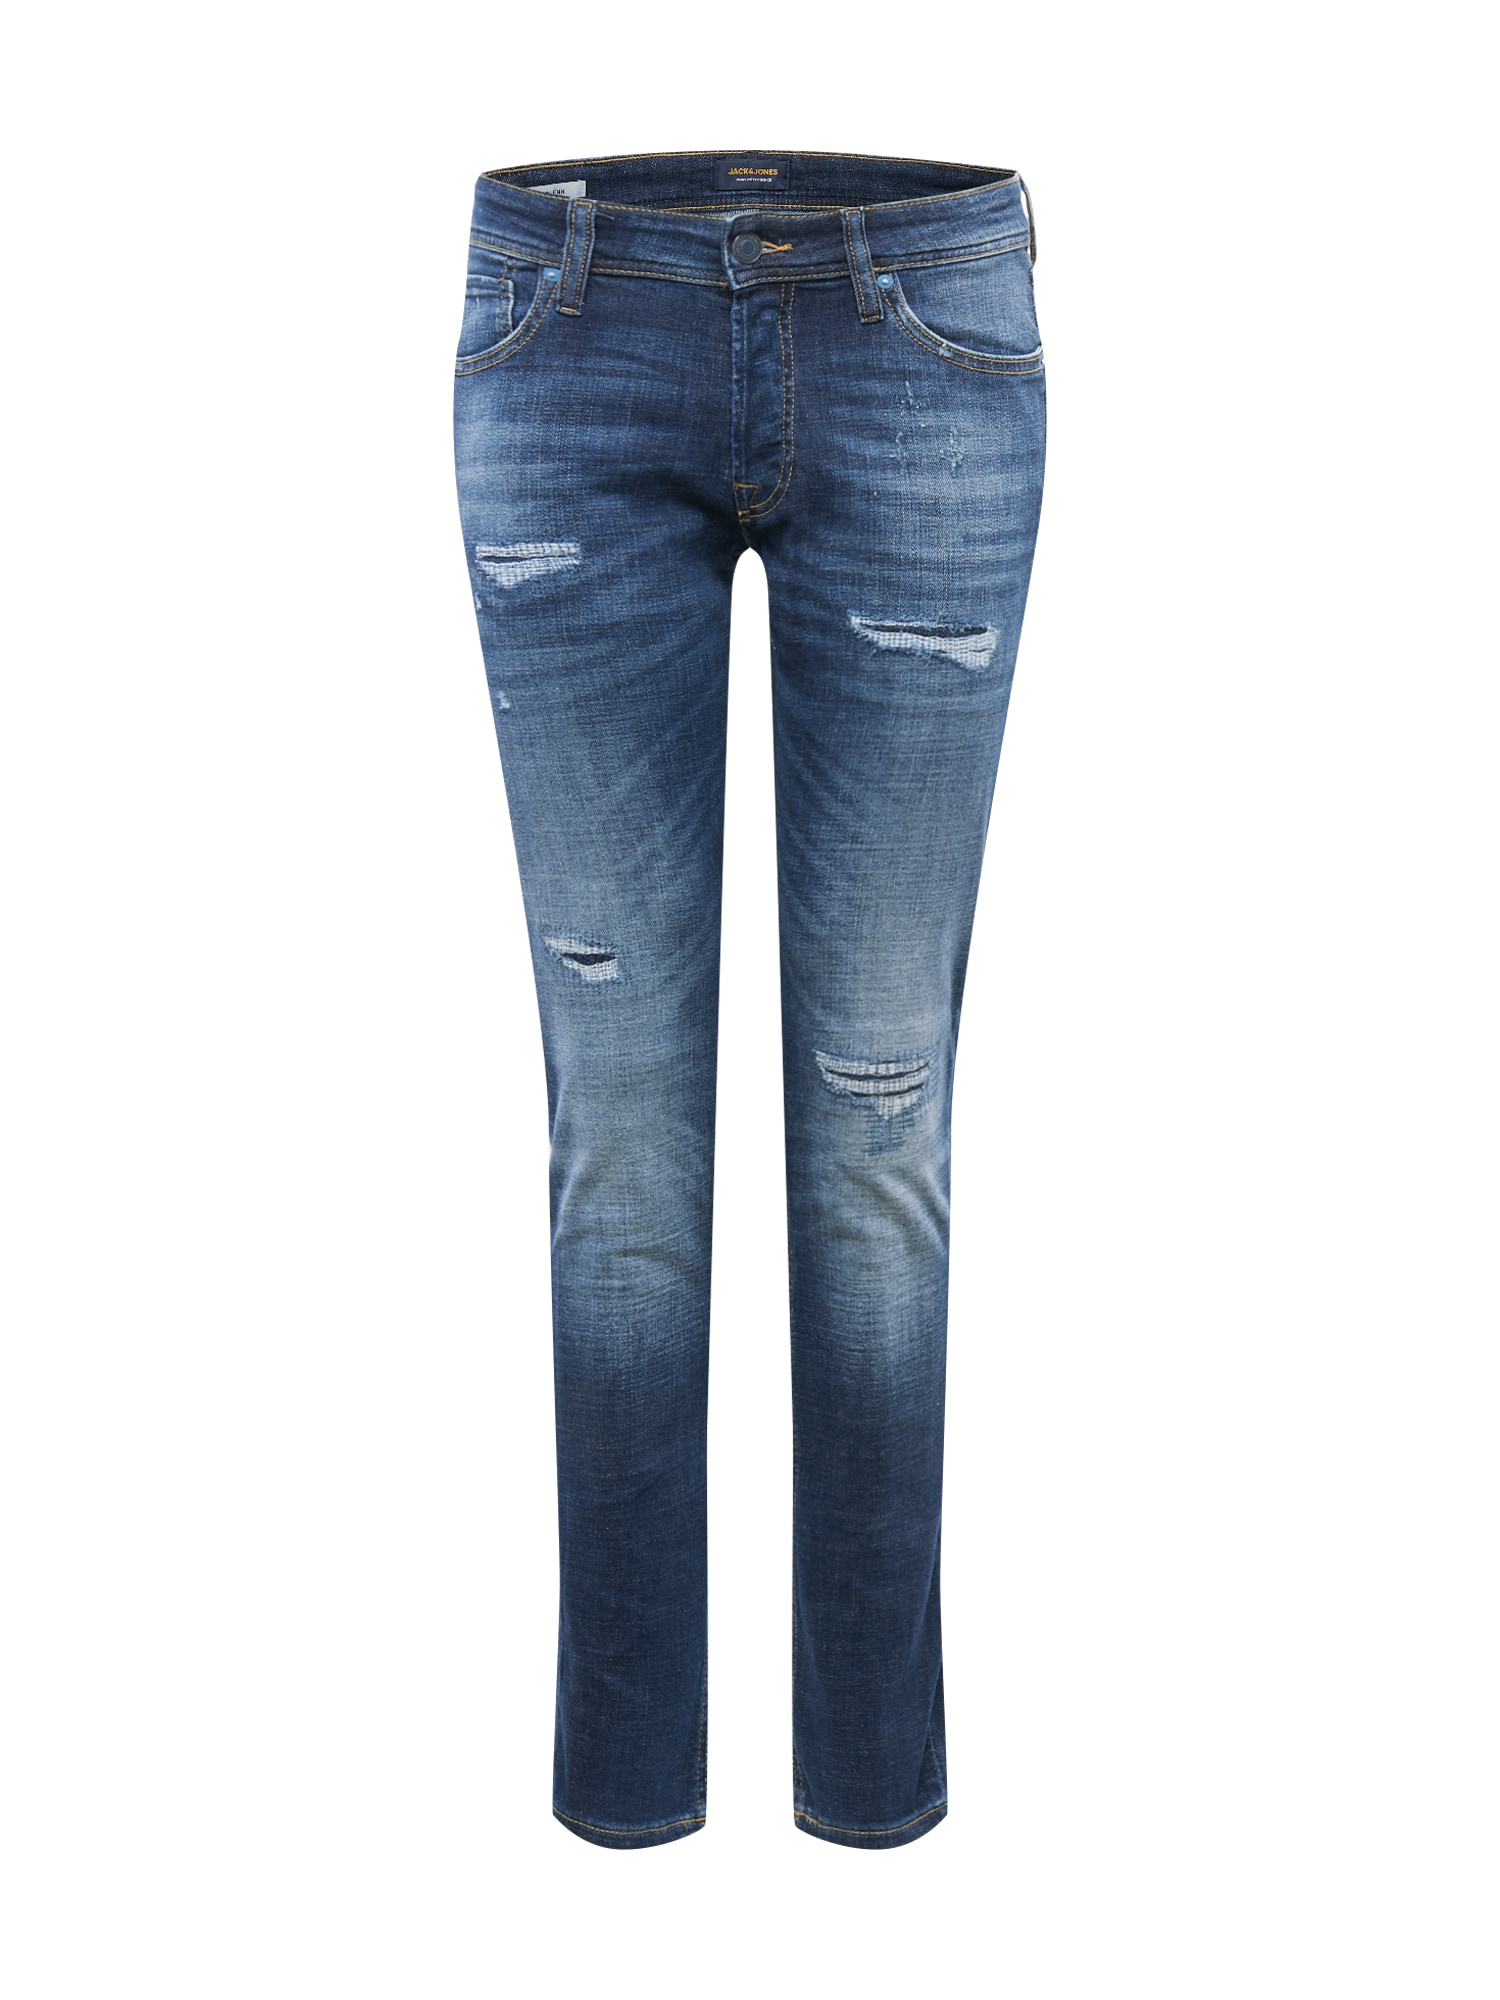 JACK & JONES Džínsy 'Glenn'  modrá denim